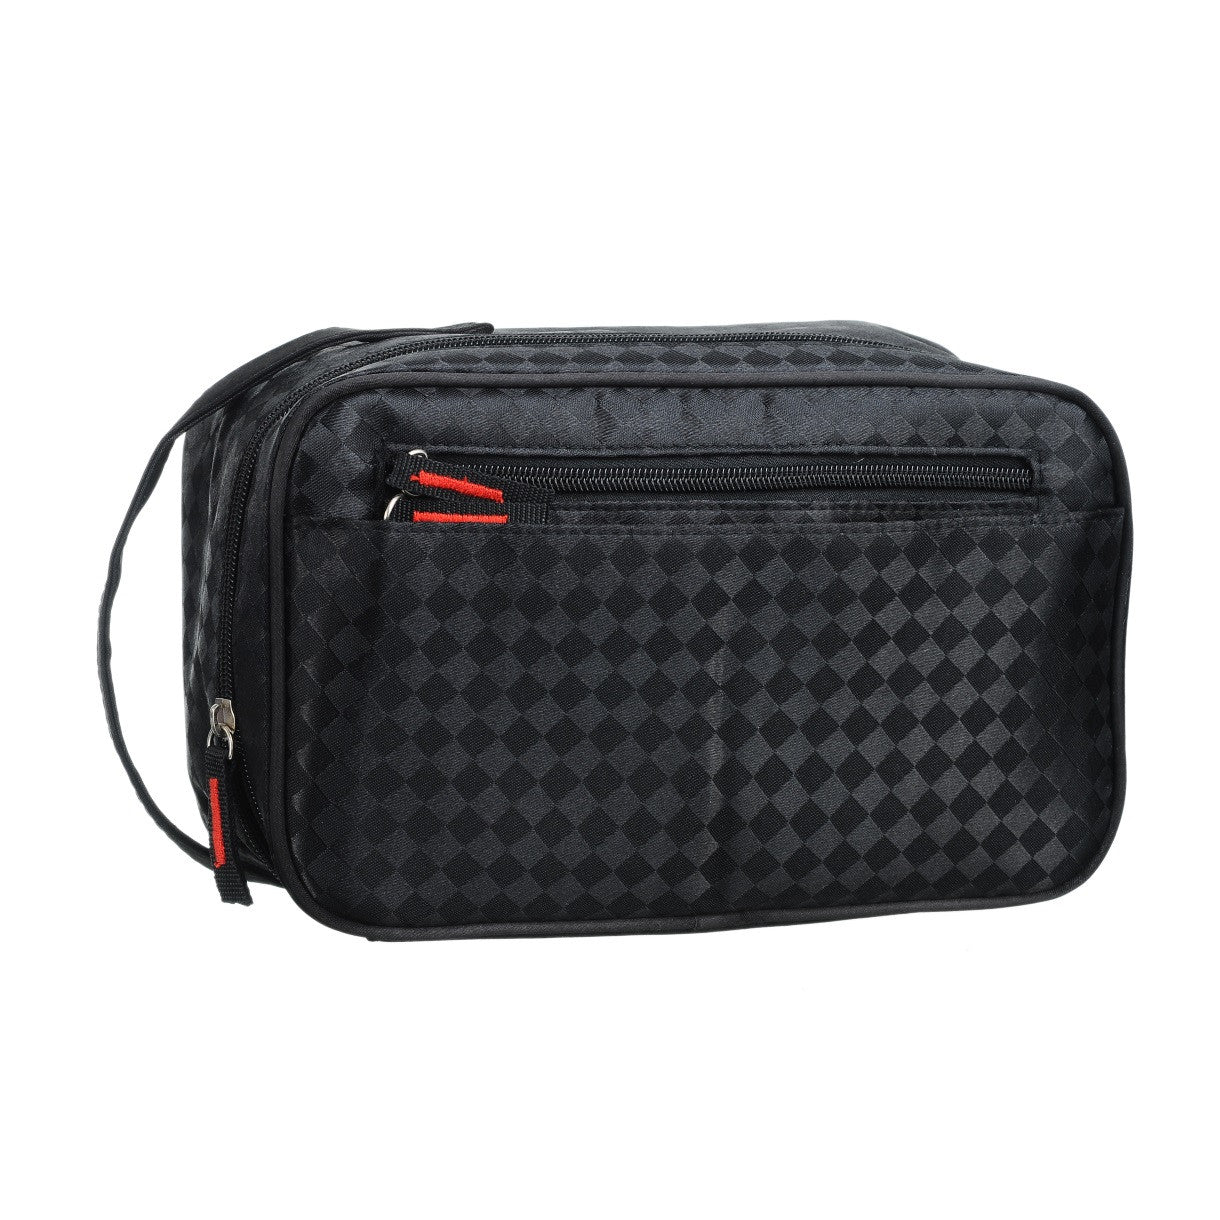 Mad Style Dopp Kit- Black – Timely Buys ba34556feafa4